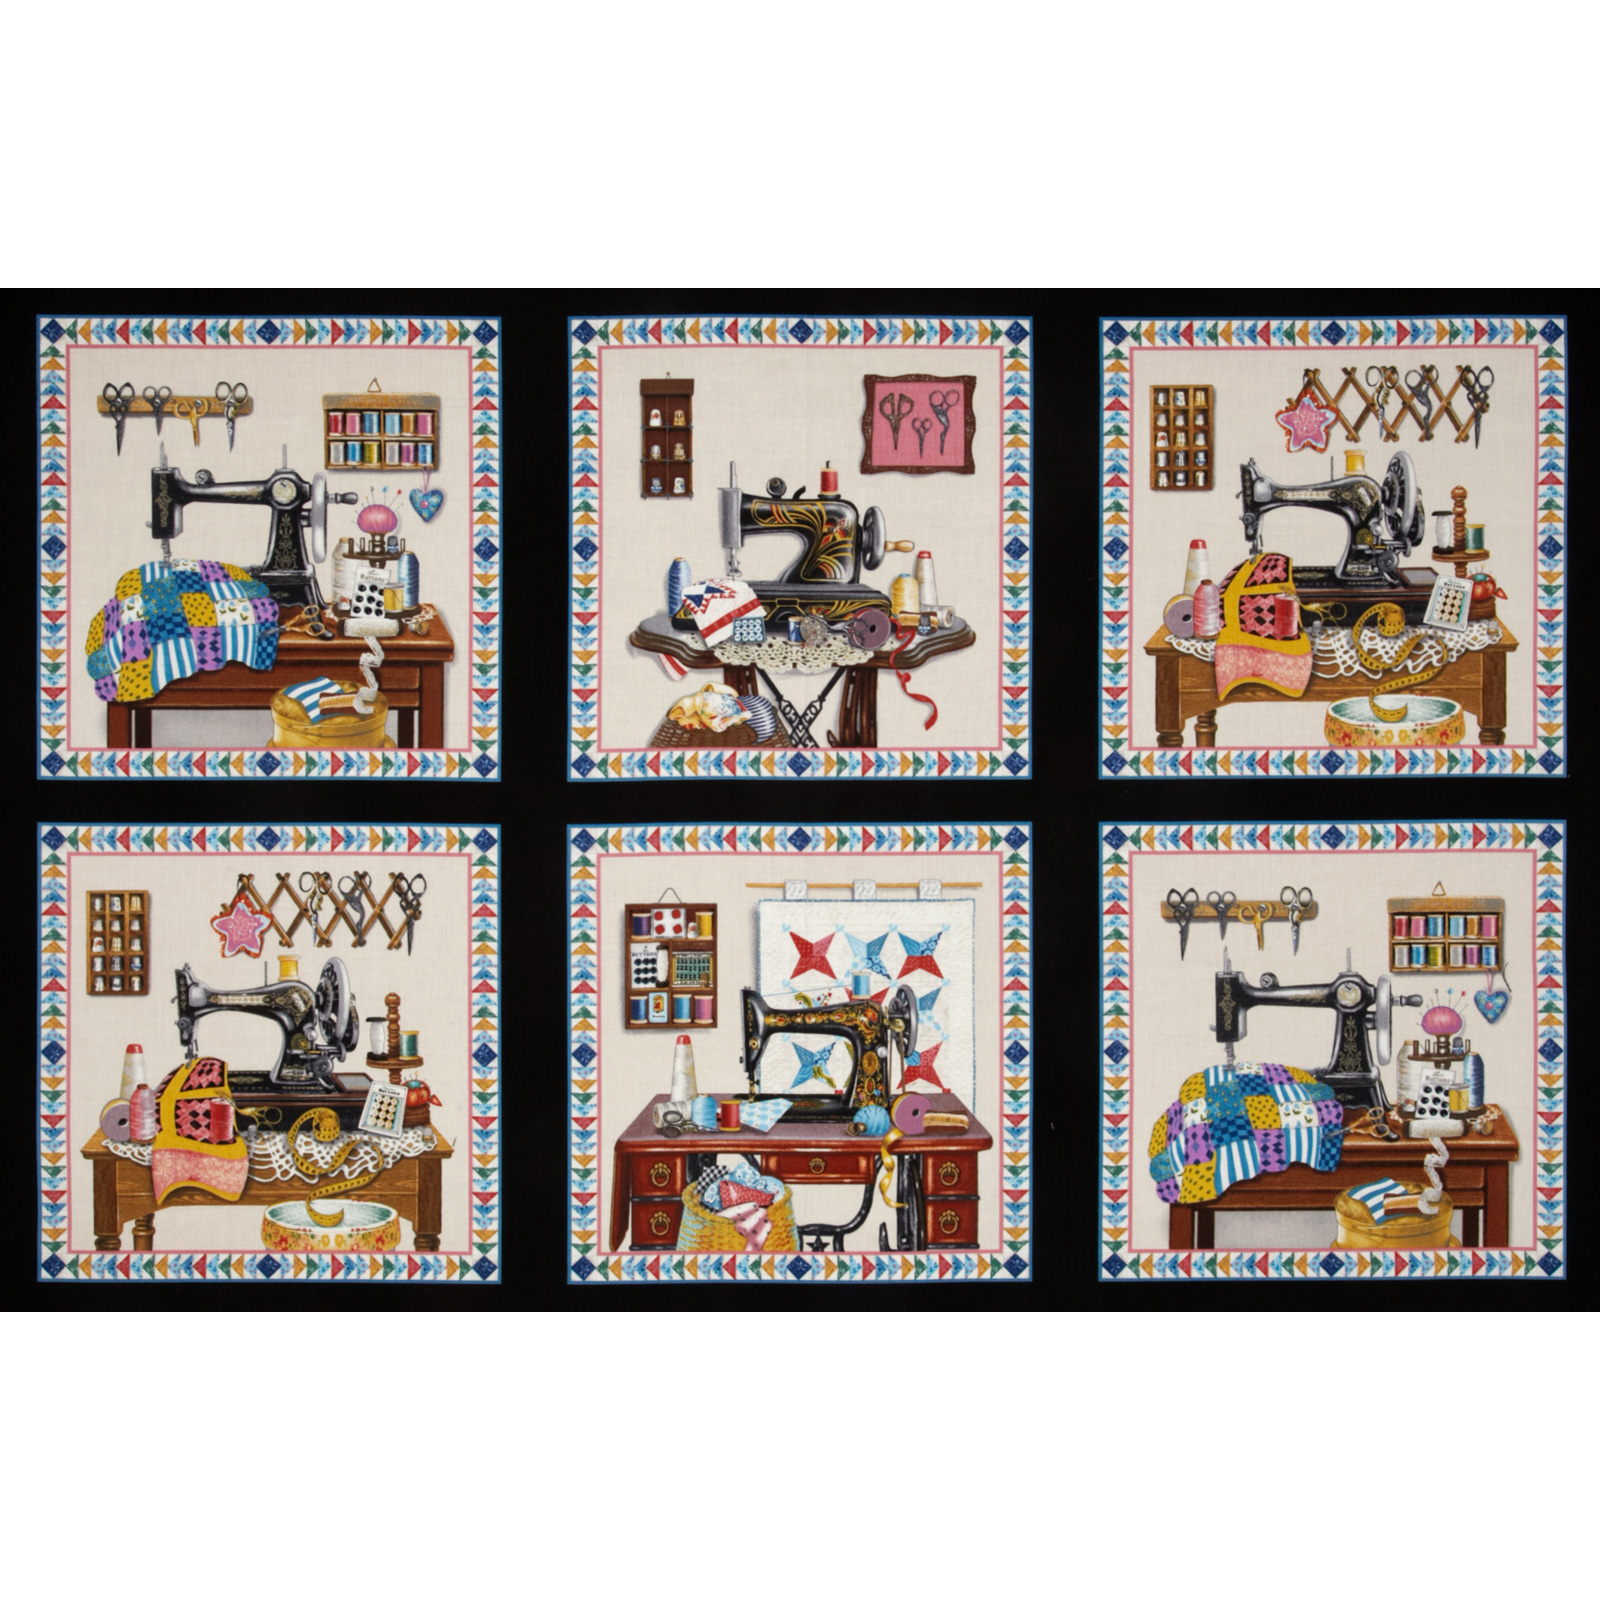 Fabric.com coupon: Stitch In Time Sewing Patchwork Panel Black Fabric